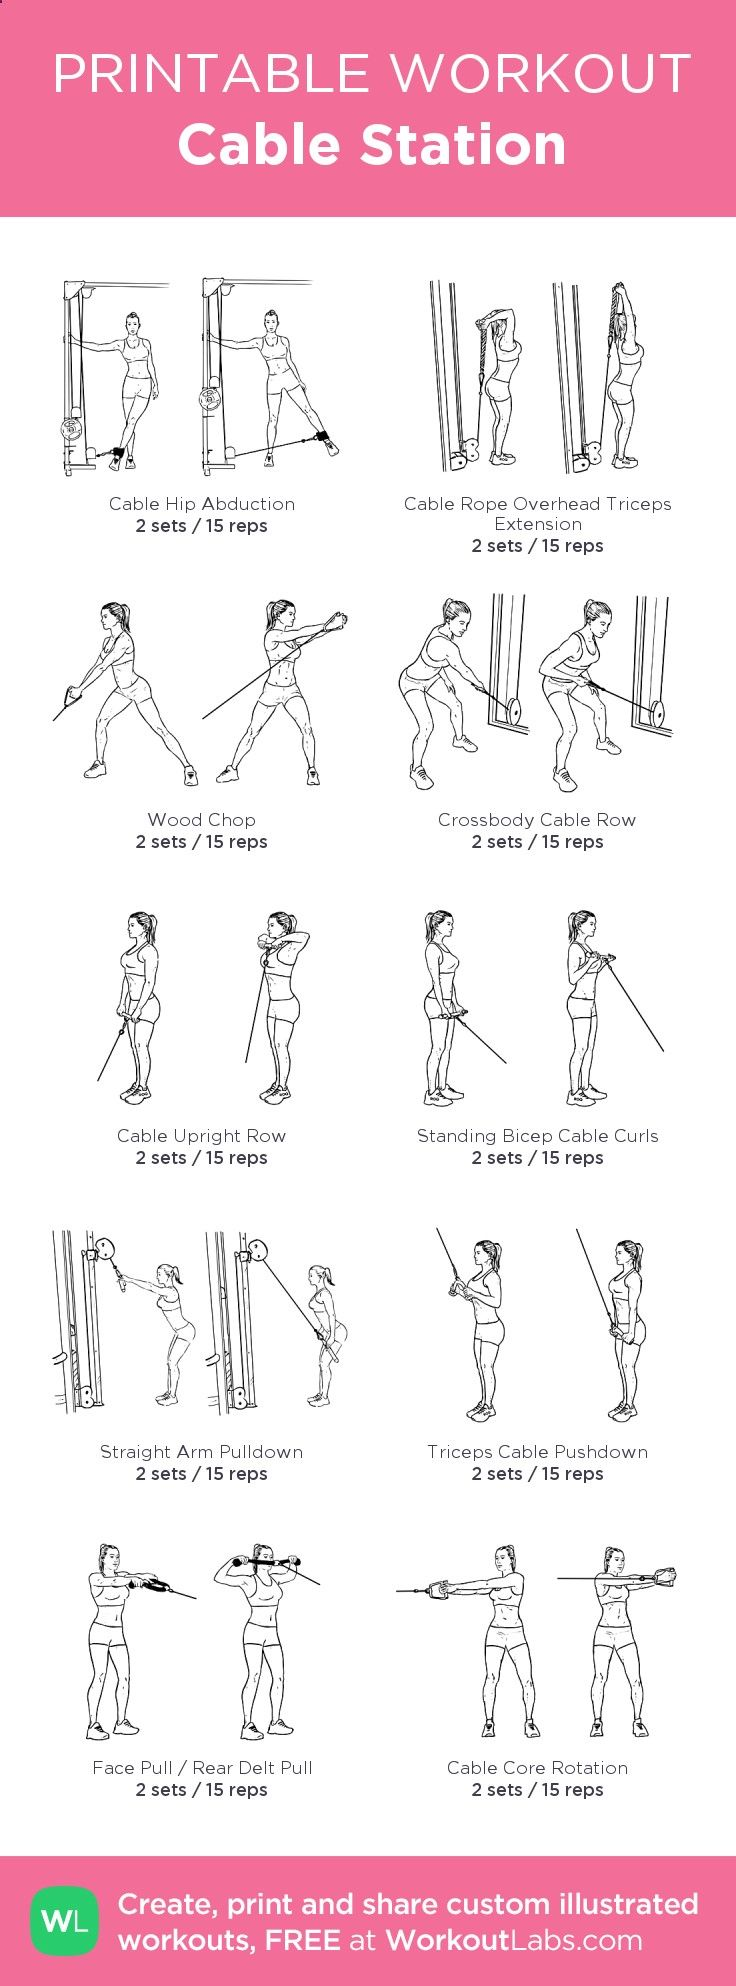 Cable Station:my visual workout created at WorkoutLabs.com • Click through to customize and download as a FREE PDF! #customworkout